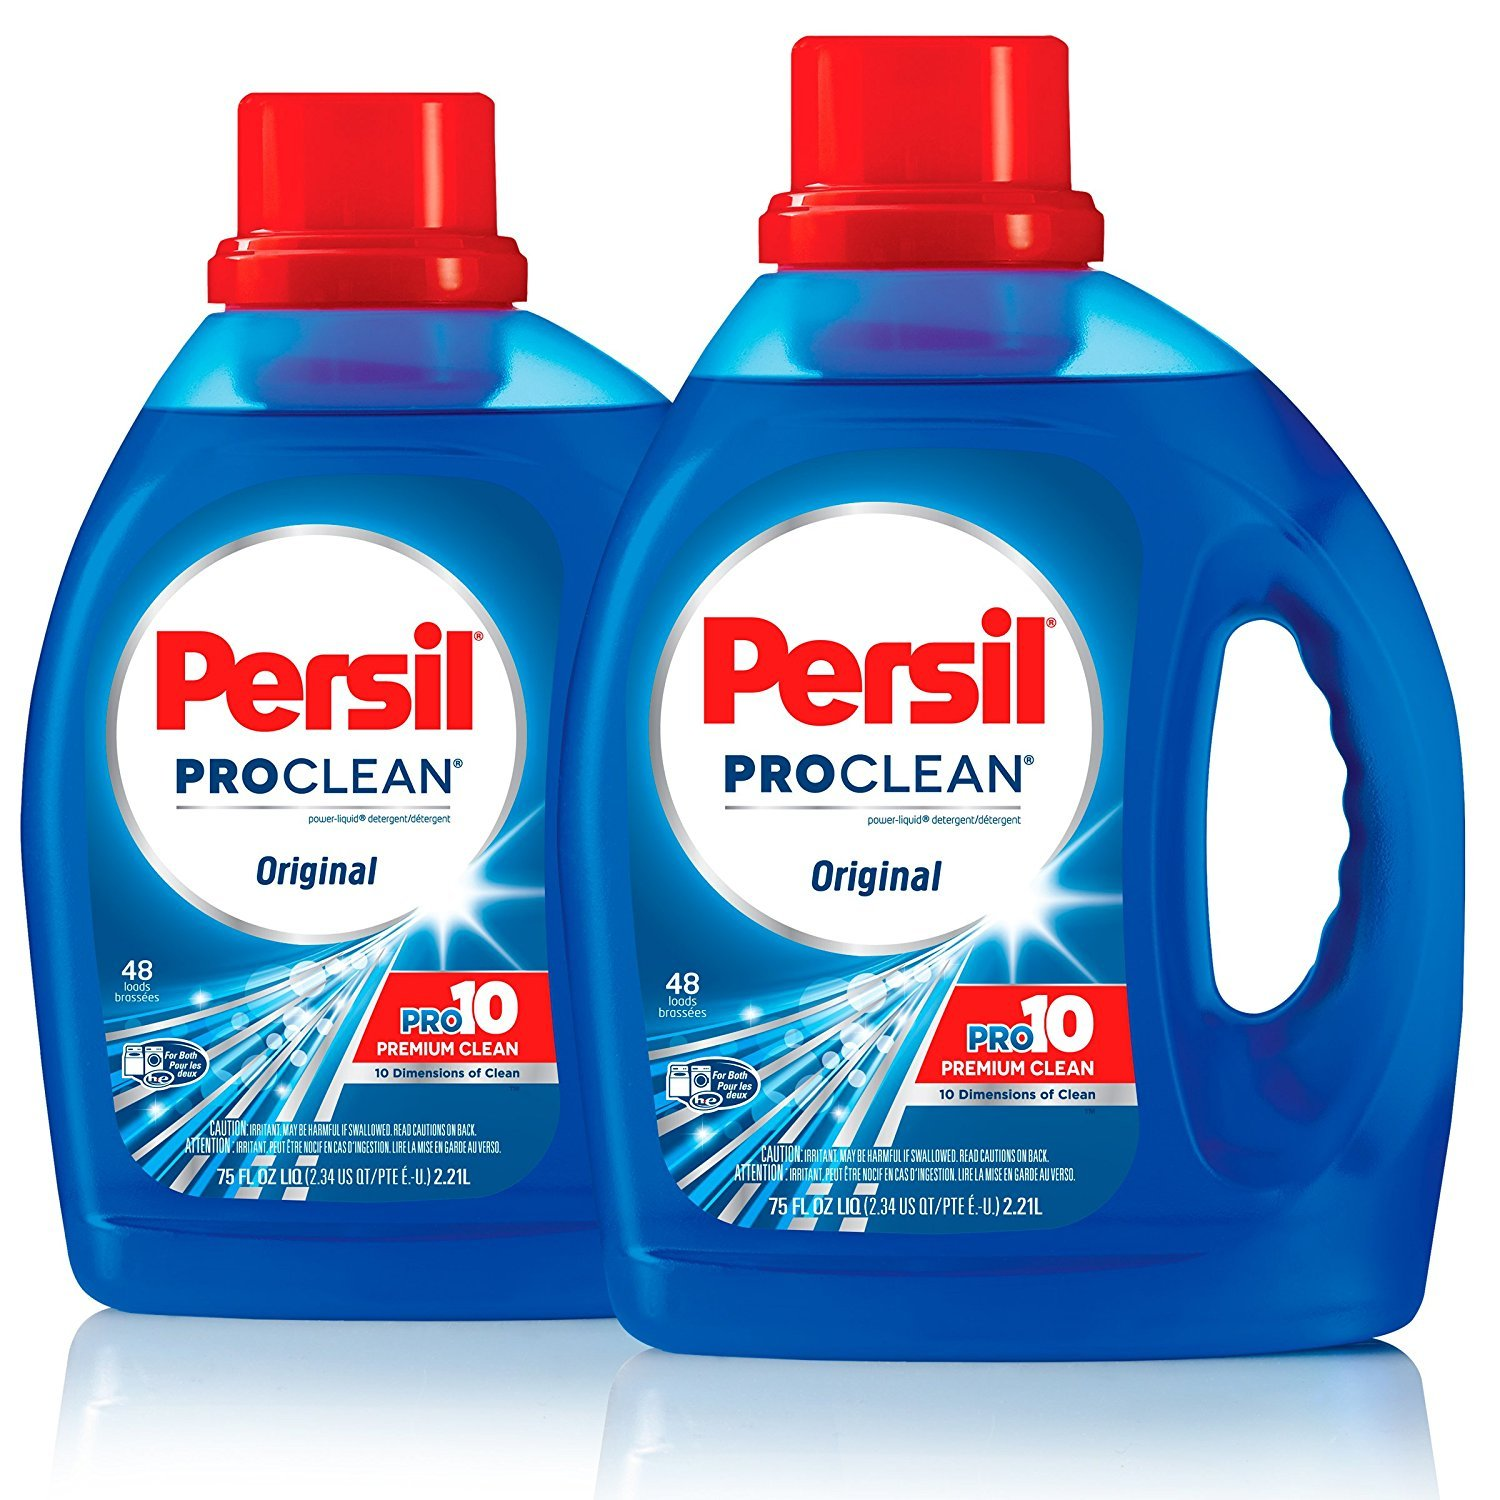 Persil ProClean Power-Liquid Laundry Detergent, Original Scent, 75 Fluid Ounces, 96 Total Loads (Pack of 2) (Packaging May Vary) Dial Corporation 10602125